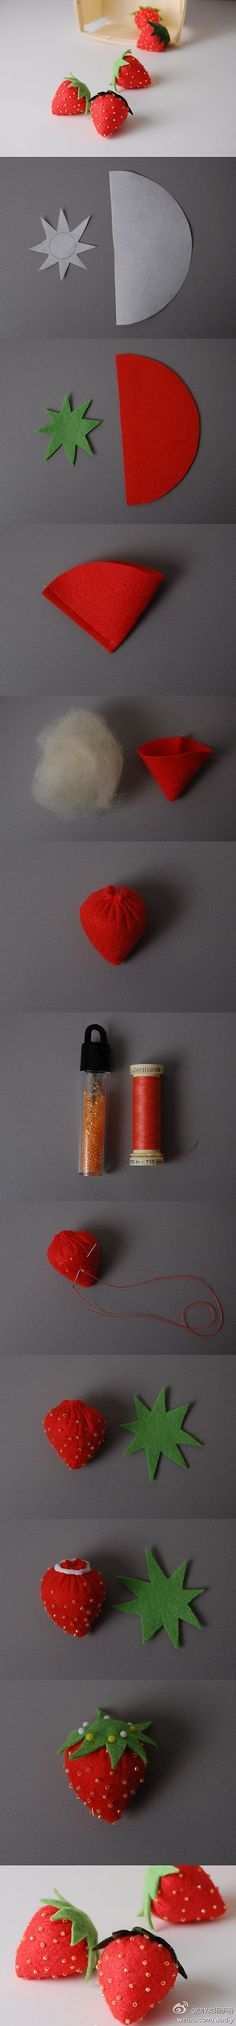 Yummy strawberries *stitch seeds with embroidery floss for a safer alternative to beads